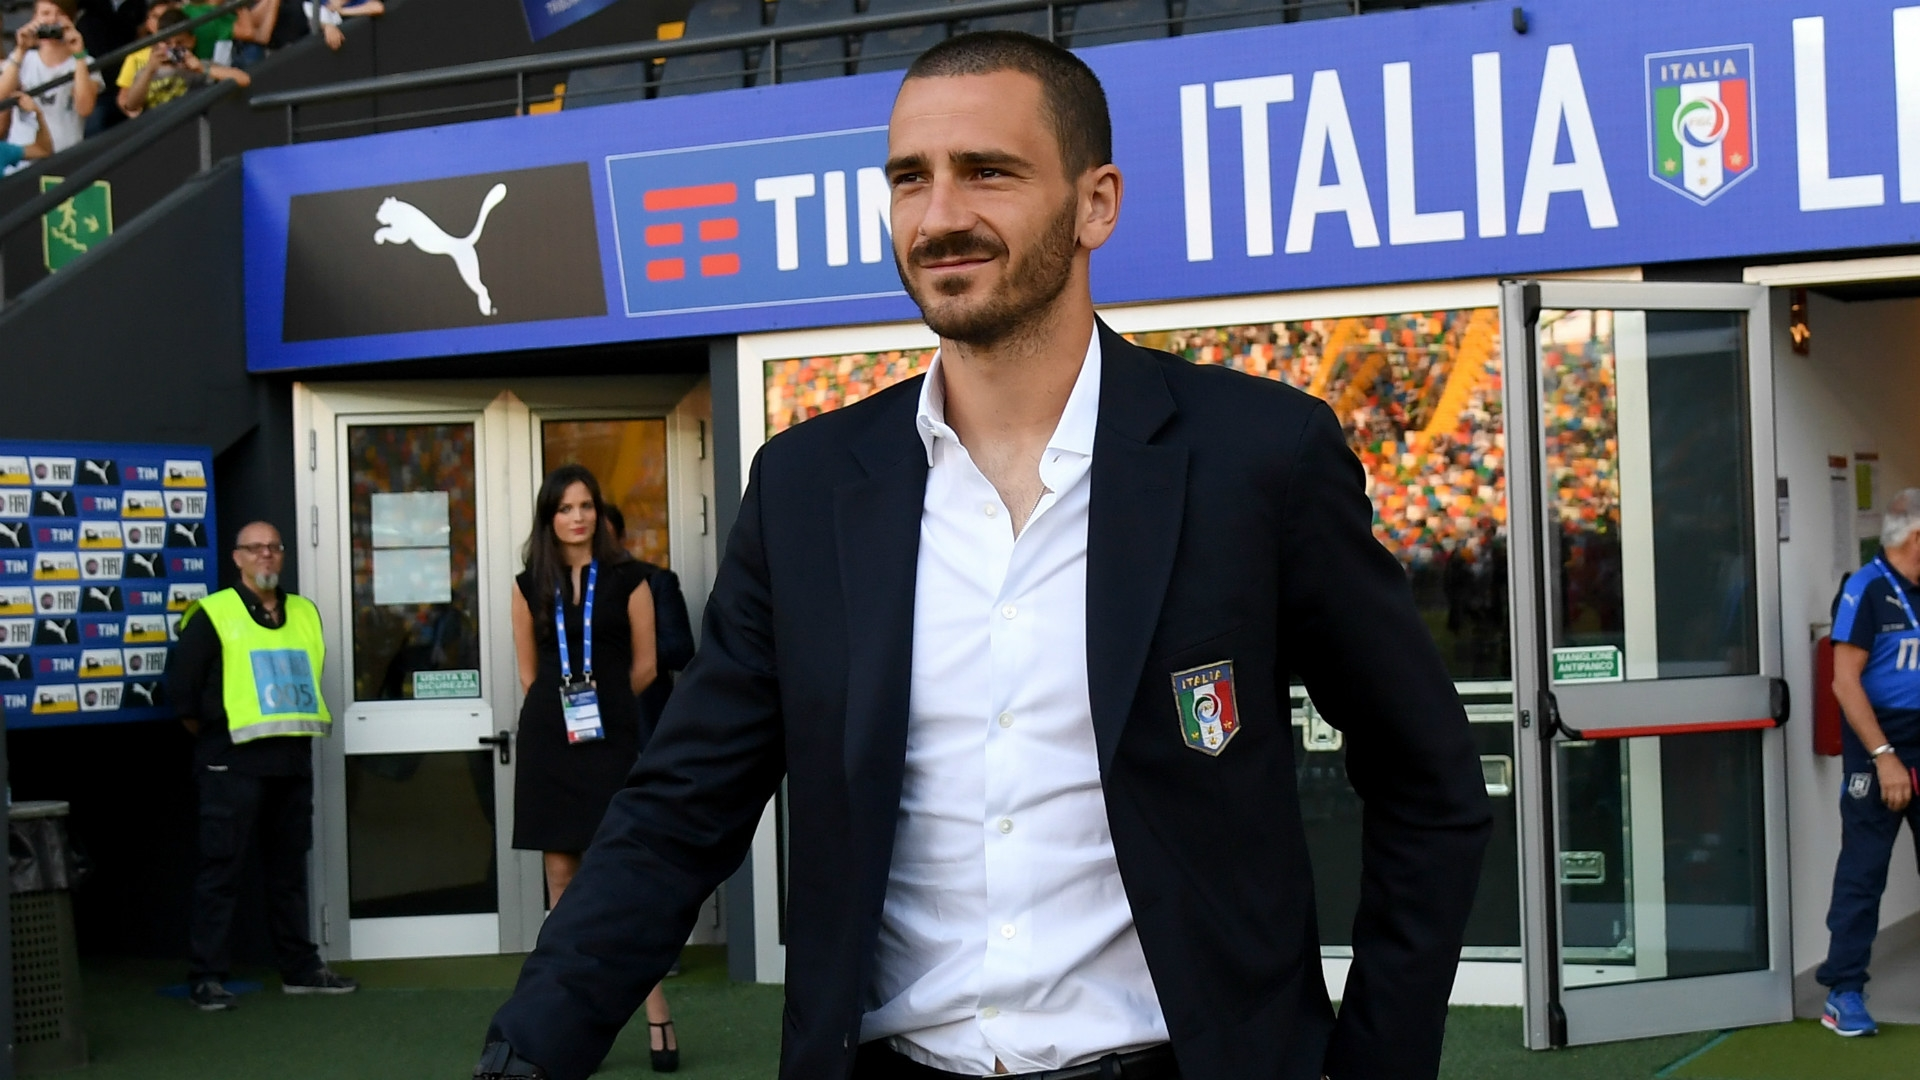 The story that Bonucci, one of Europe's undisputed best defenders, would be leaving Italian champions Juventus to join Milan did not seem to carry very much weight when it initially was starting to be discussed in the media.